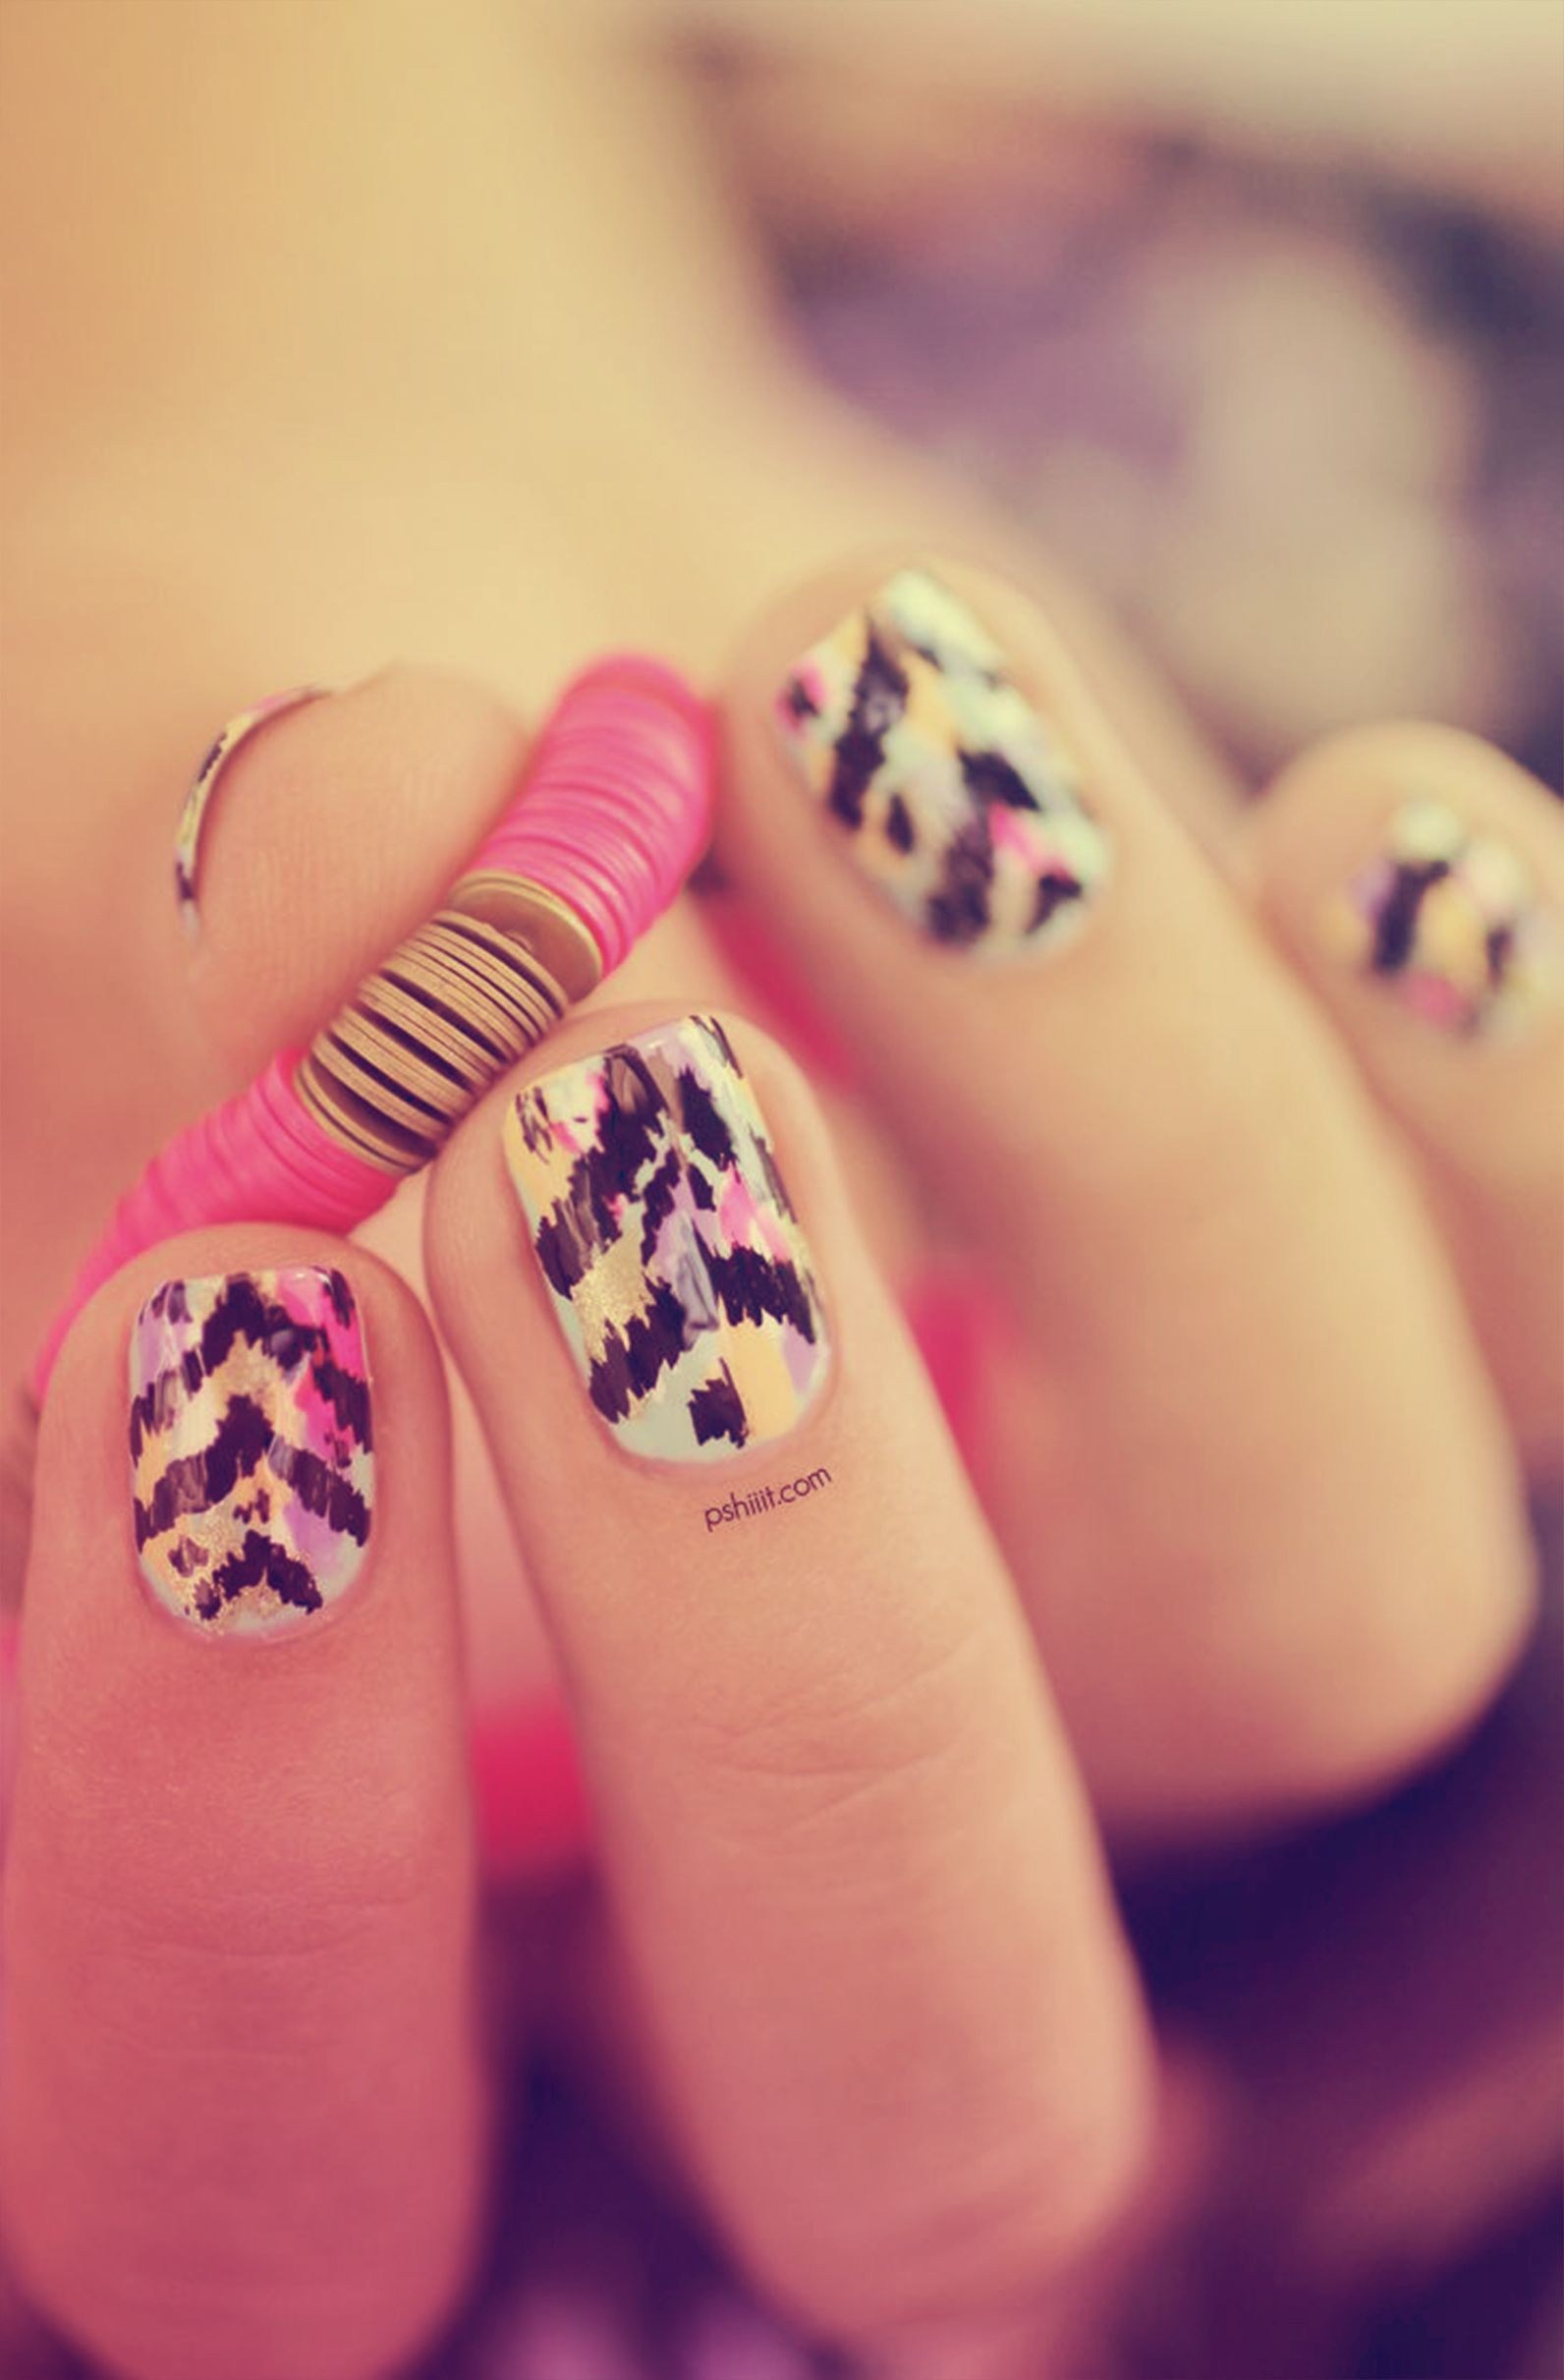 Abstrato e colorido! #nails #colors #cute